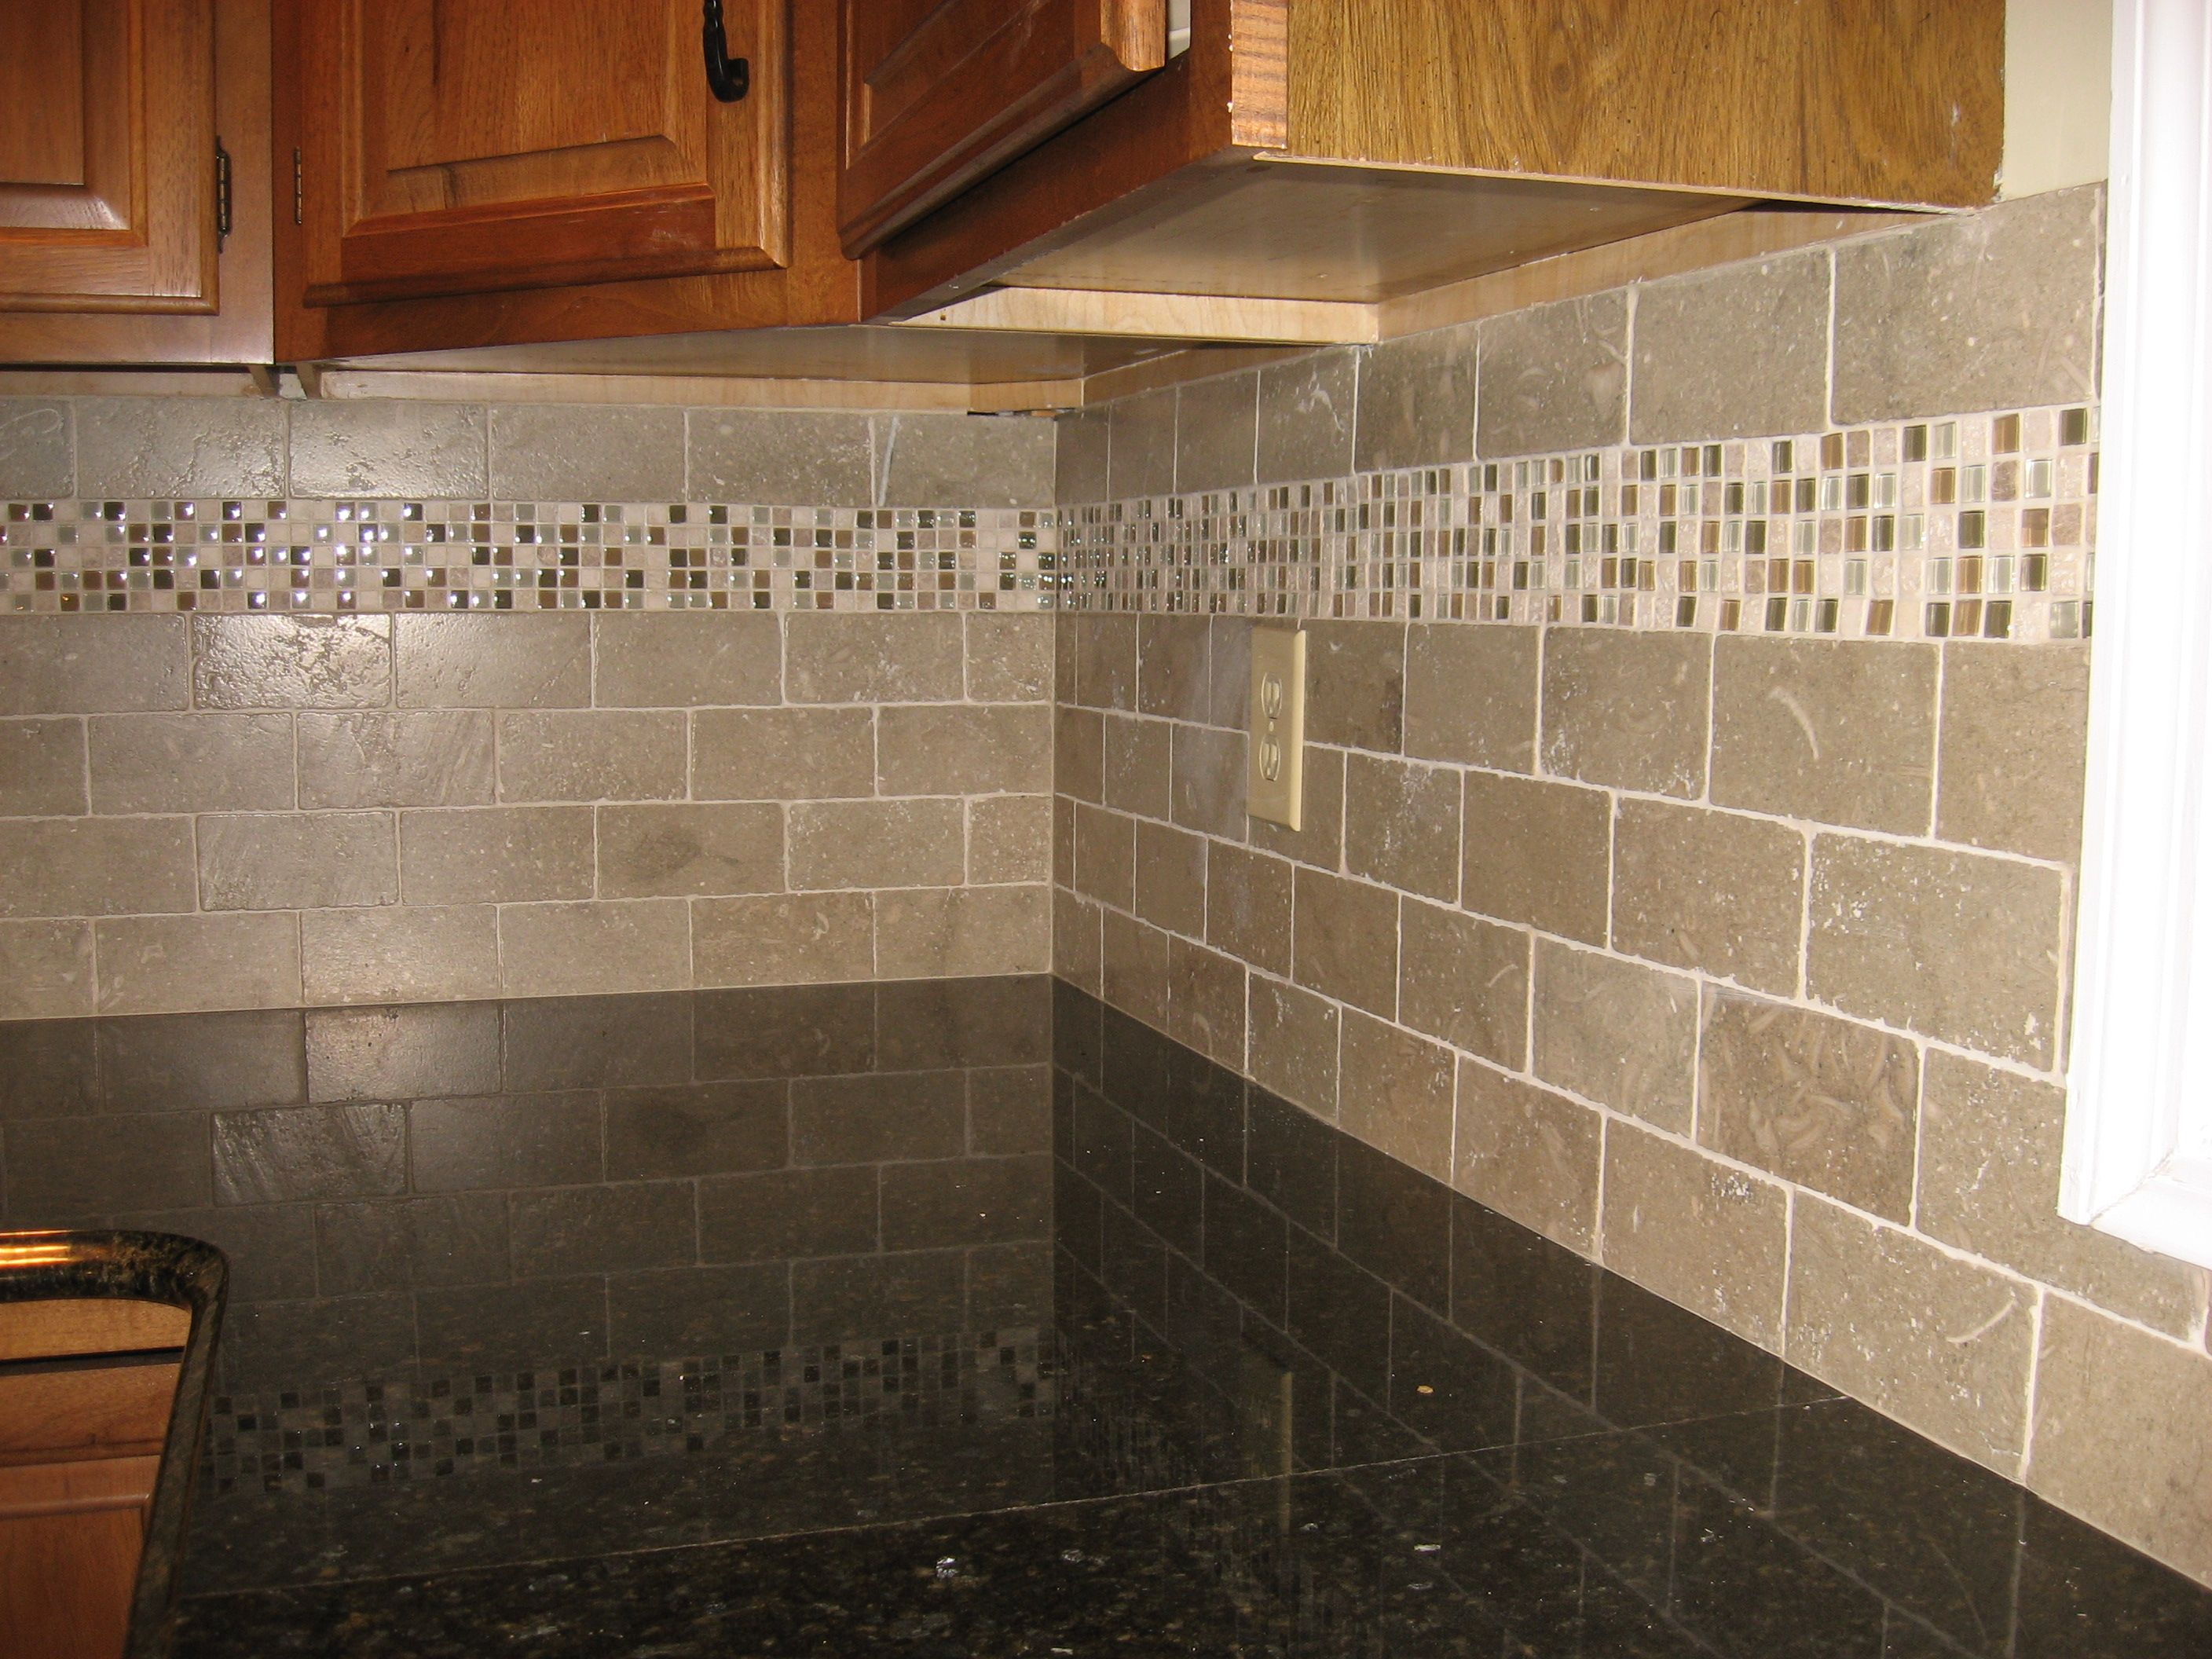 Backsplash Tile For Kitchen 25 Best Ideas About Backsplash For Kitchen On Pinterest Kitchen